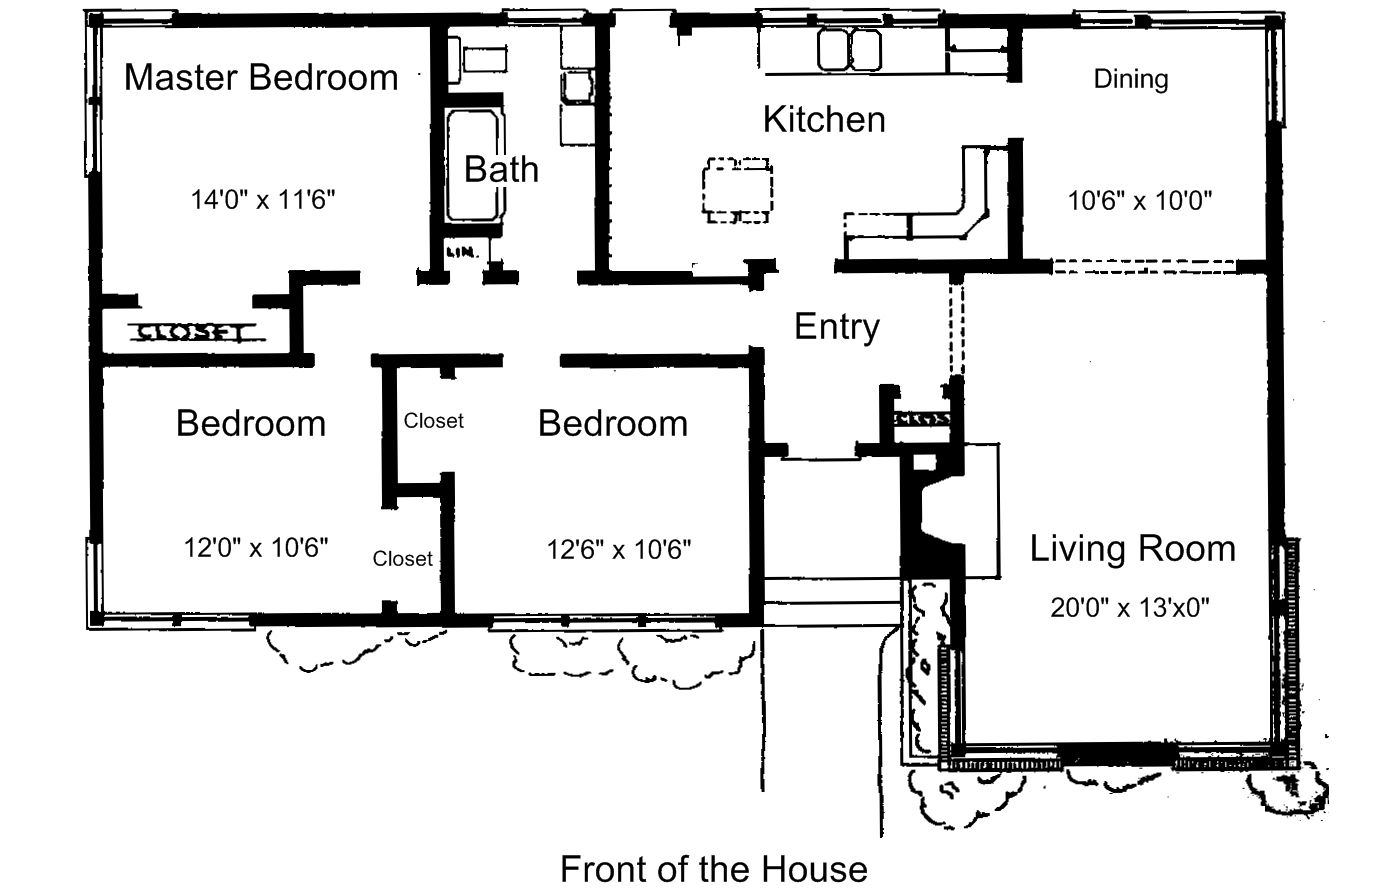 Free Small House Plans For Ideas or Just Dreaming on best house designs, one floor house designs, rental house designs, house house designs, cheap house designs, spacious house designs, small house designs, well house designs, efficiency house designs, ocean view house designs, two-story house designs, mcpe house designs, two-storey house designs, five room house designs, wooden house designs, 2015 house designs, house plans 6 bedrooms designs, bath house designs, spa house designs, pool house designs,